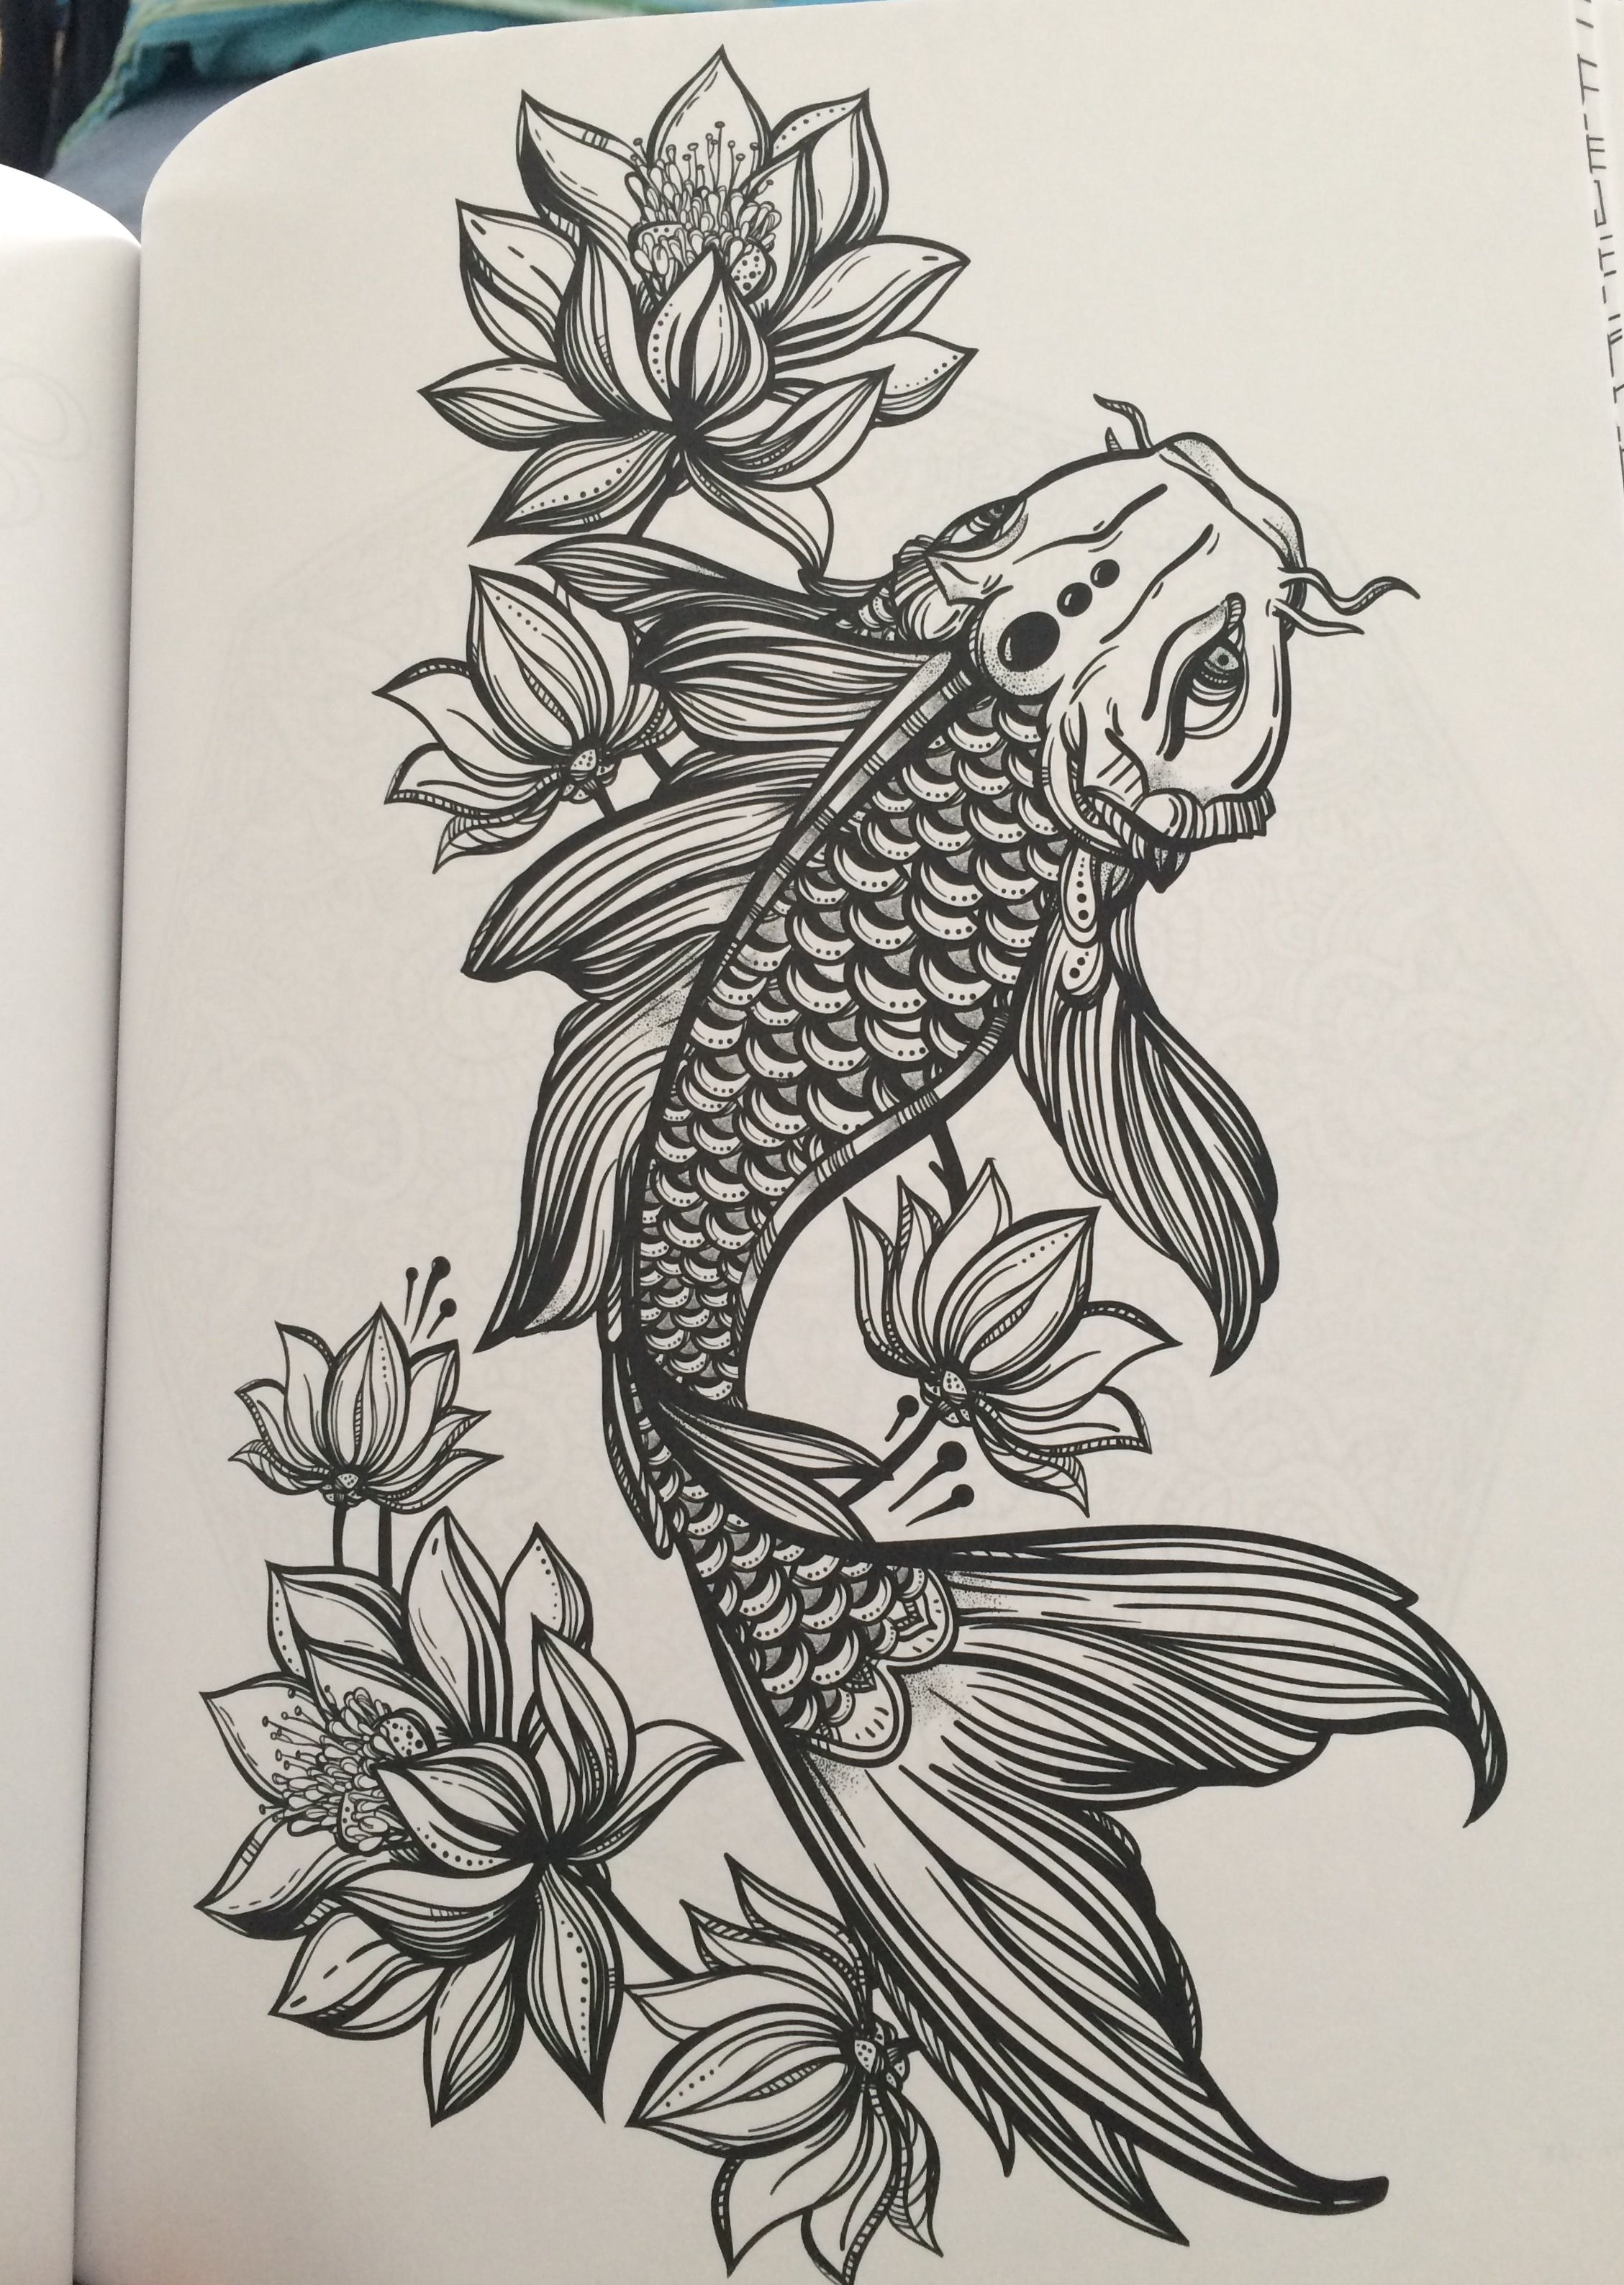 Koi and lotus flowers from my coloring book tattoo for Black koi fish meaning